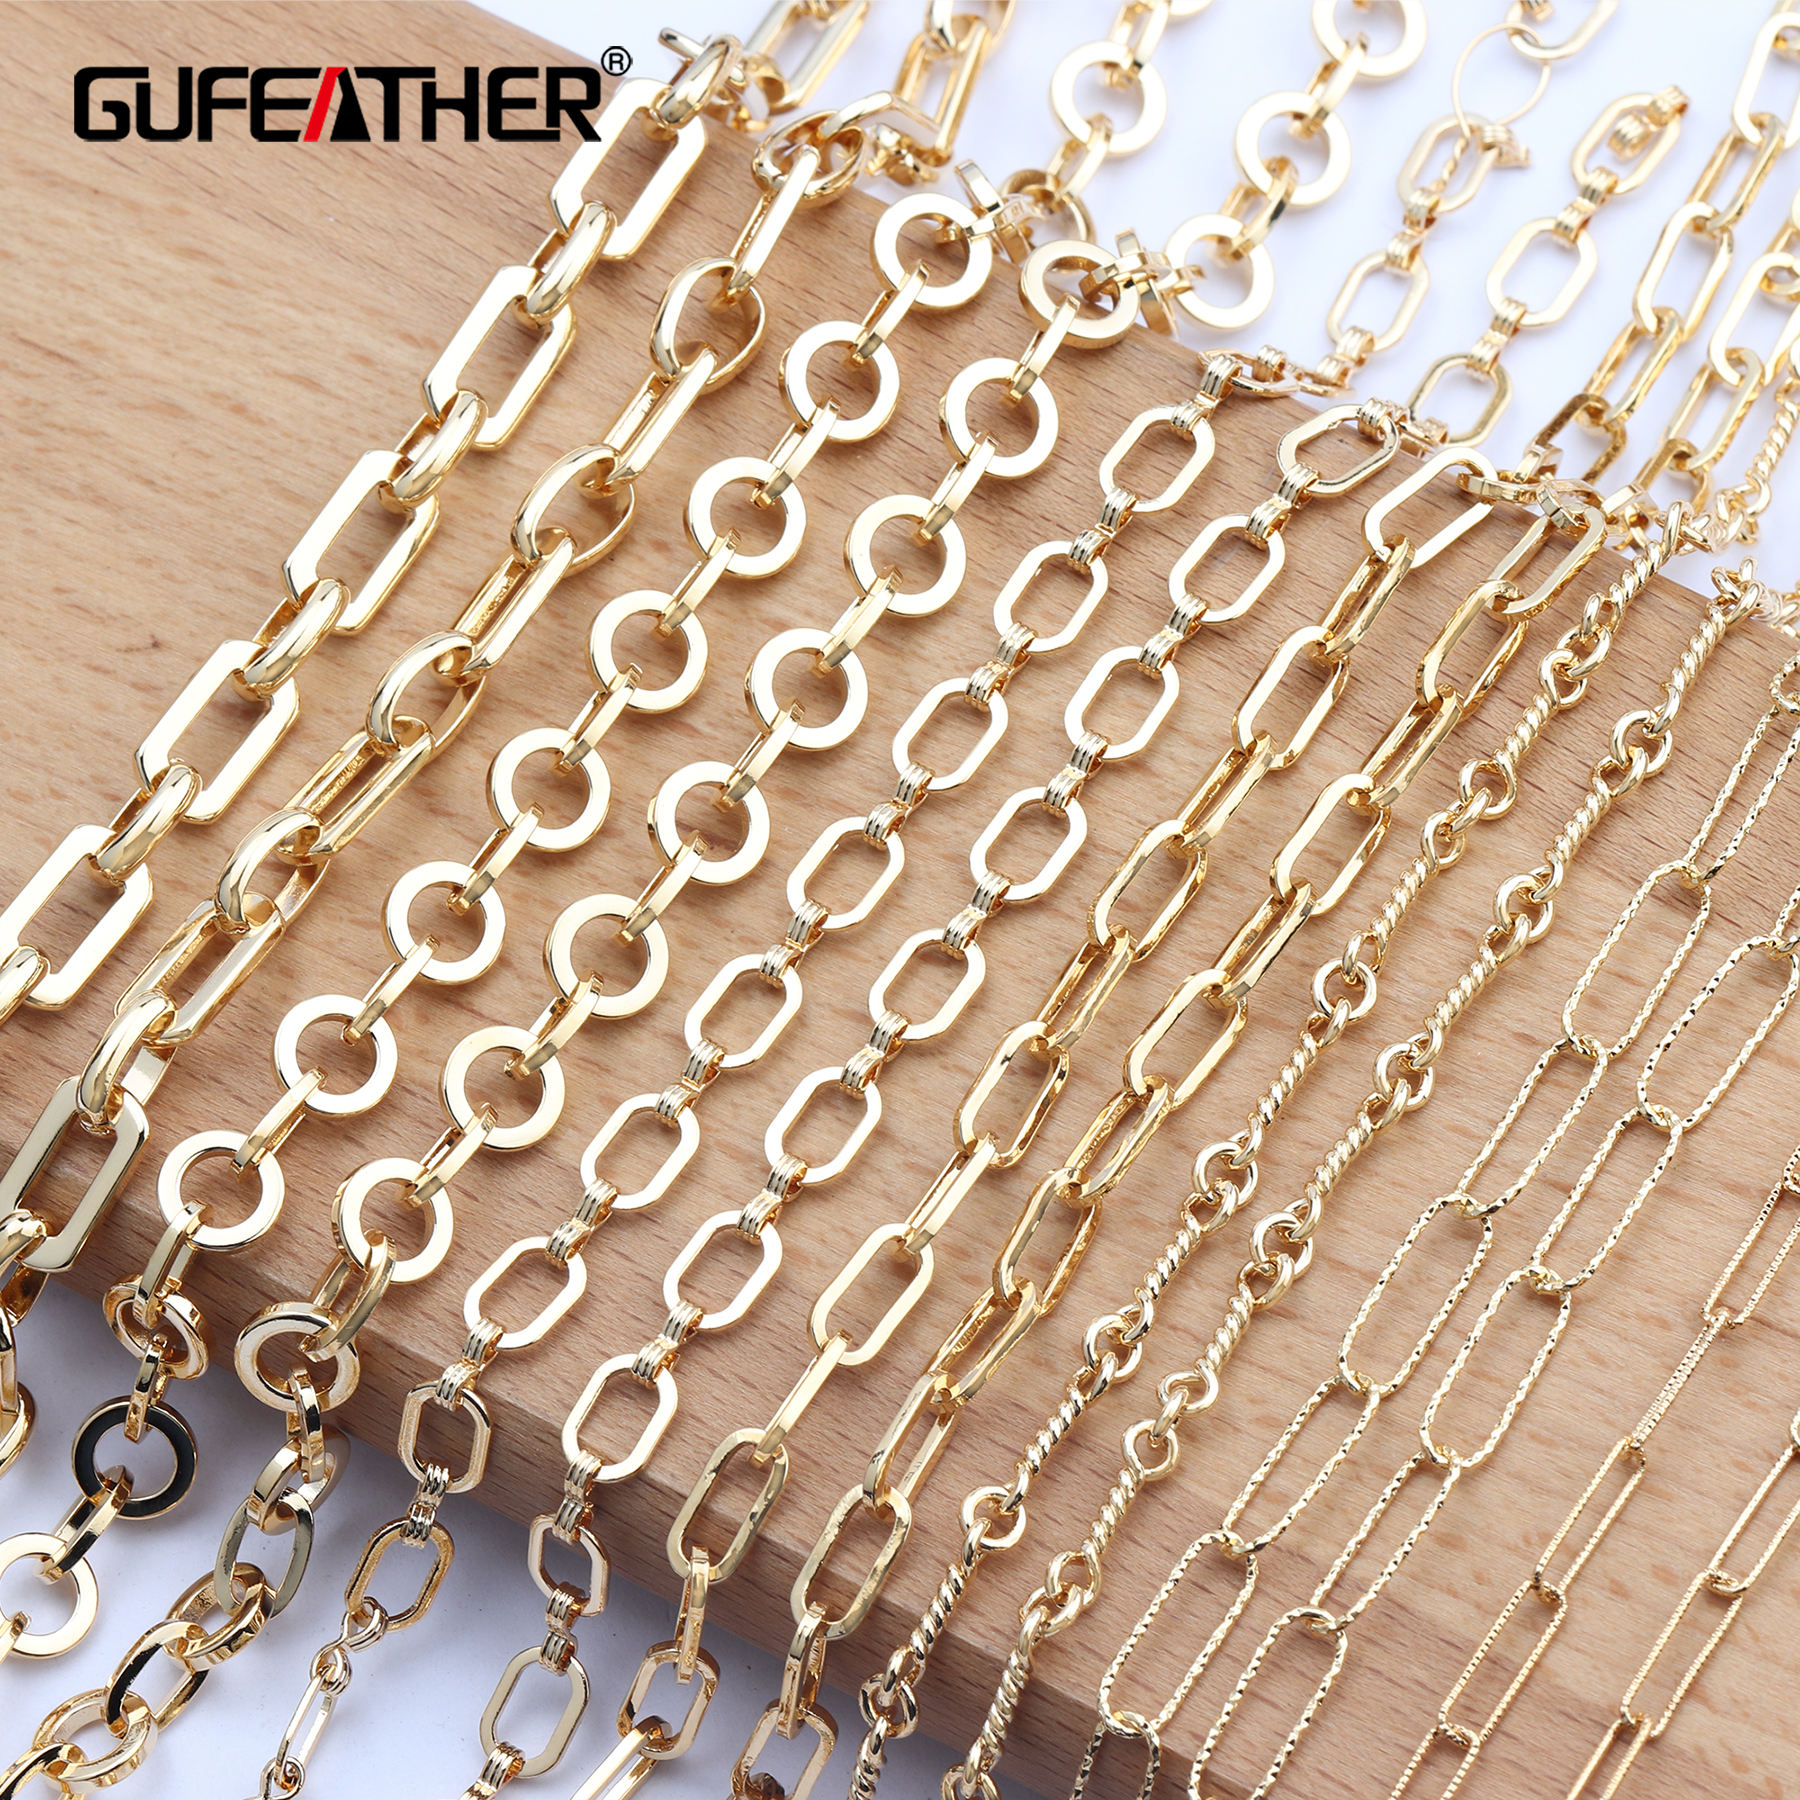 Gufeather C73, the most popular 18k gold plated necklace diy jewelry accessories copper metal chain necklace, 1m / bag